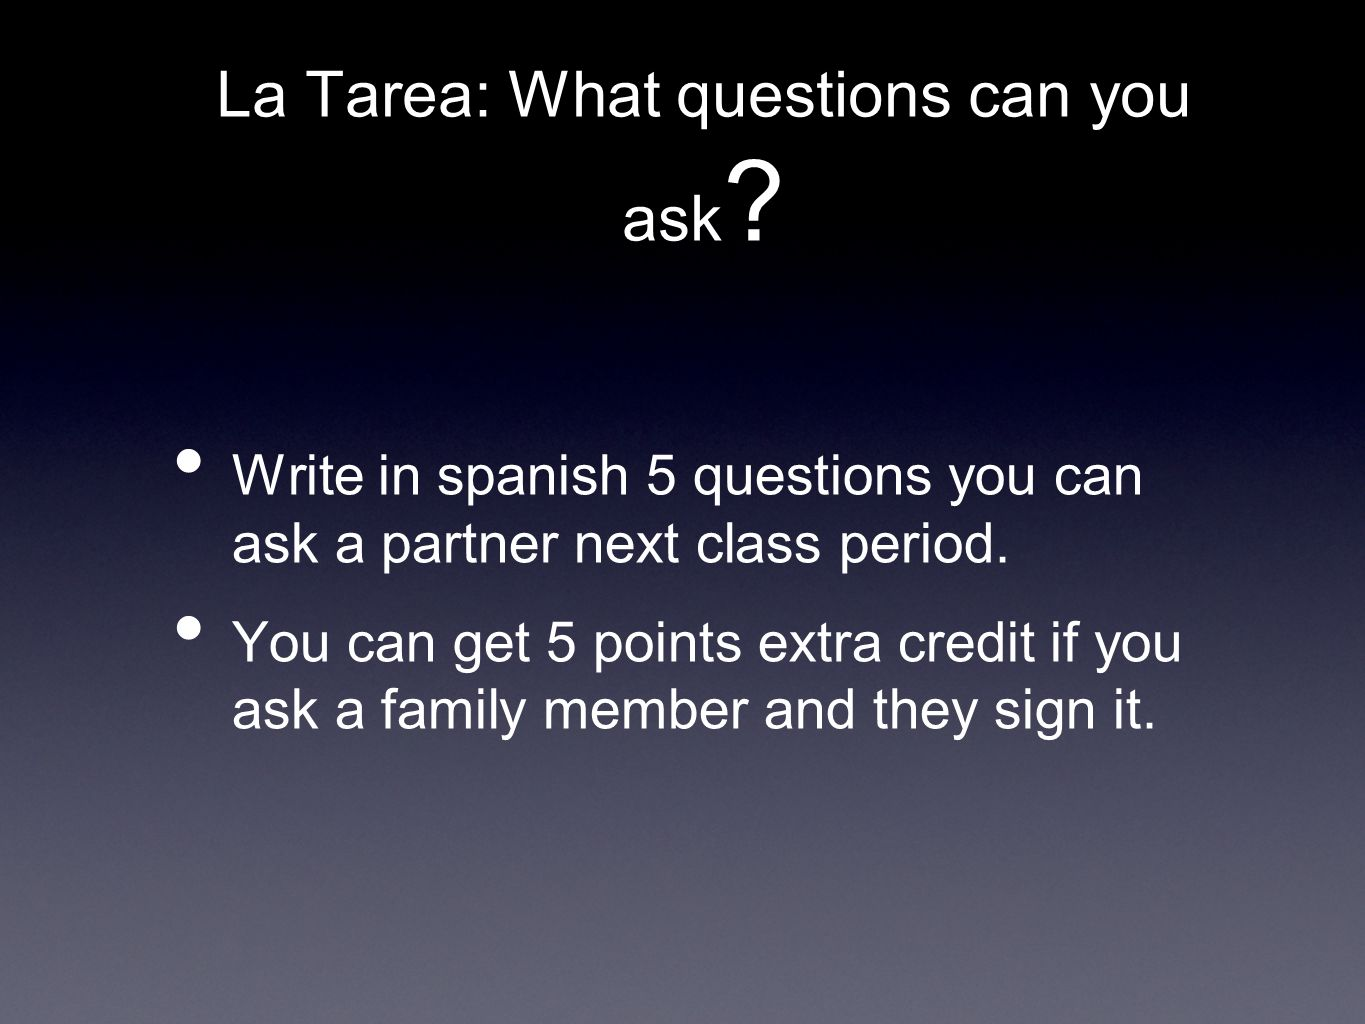 La Tarea: What questions can you ask